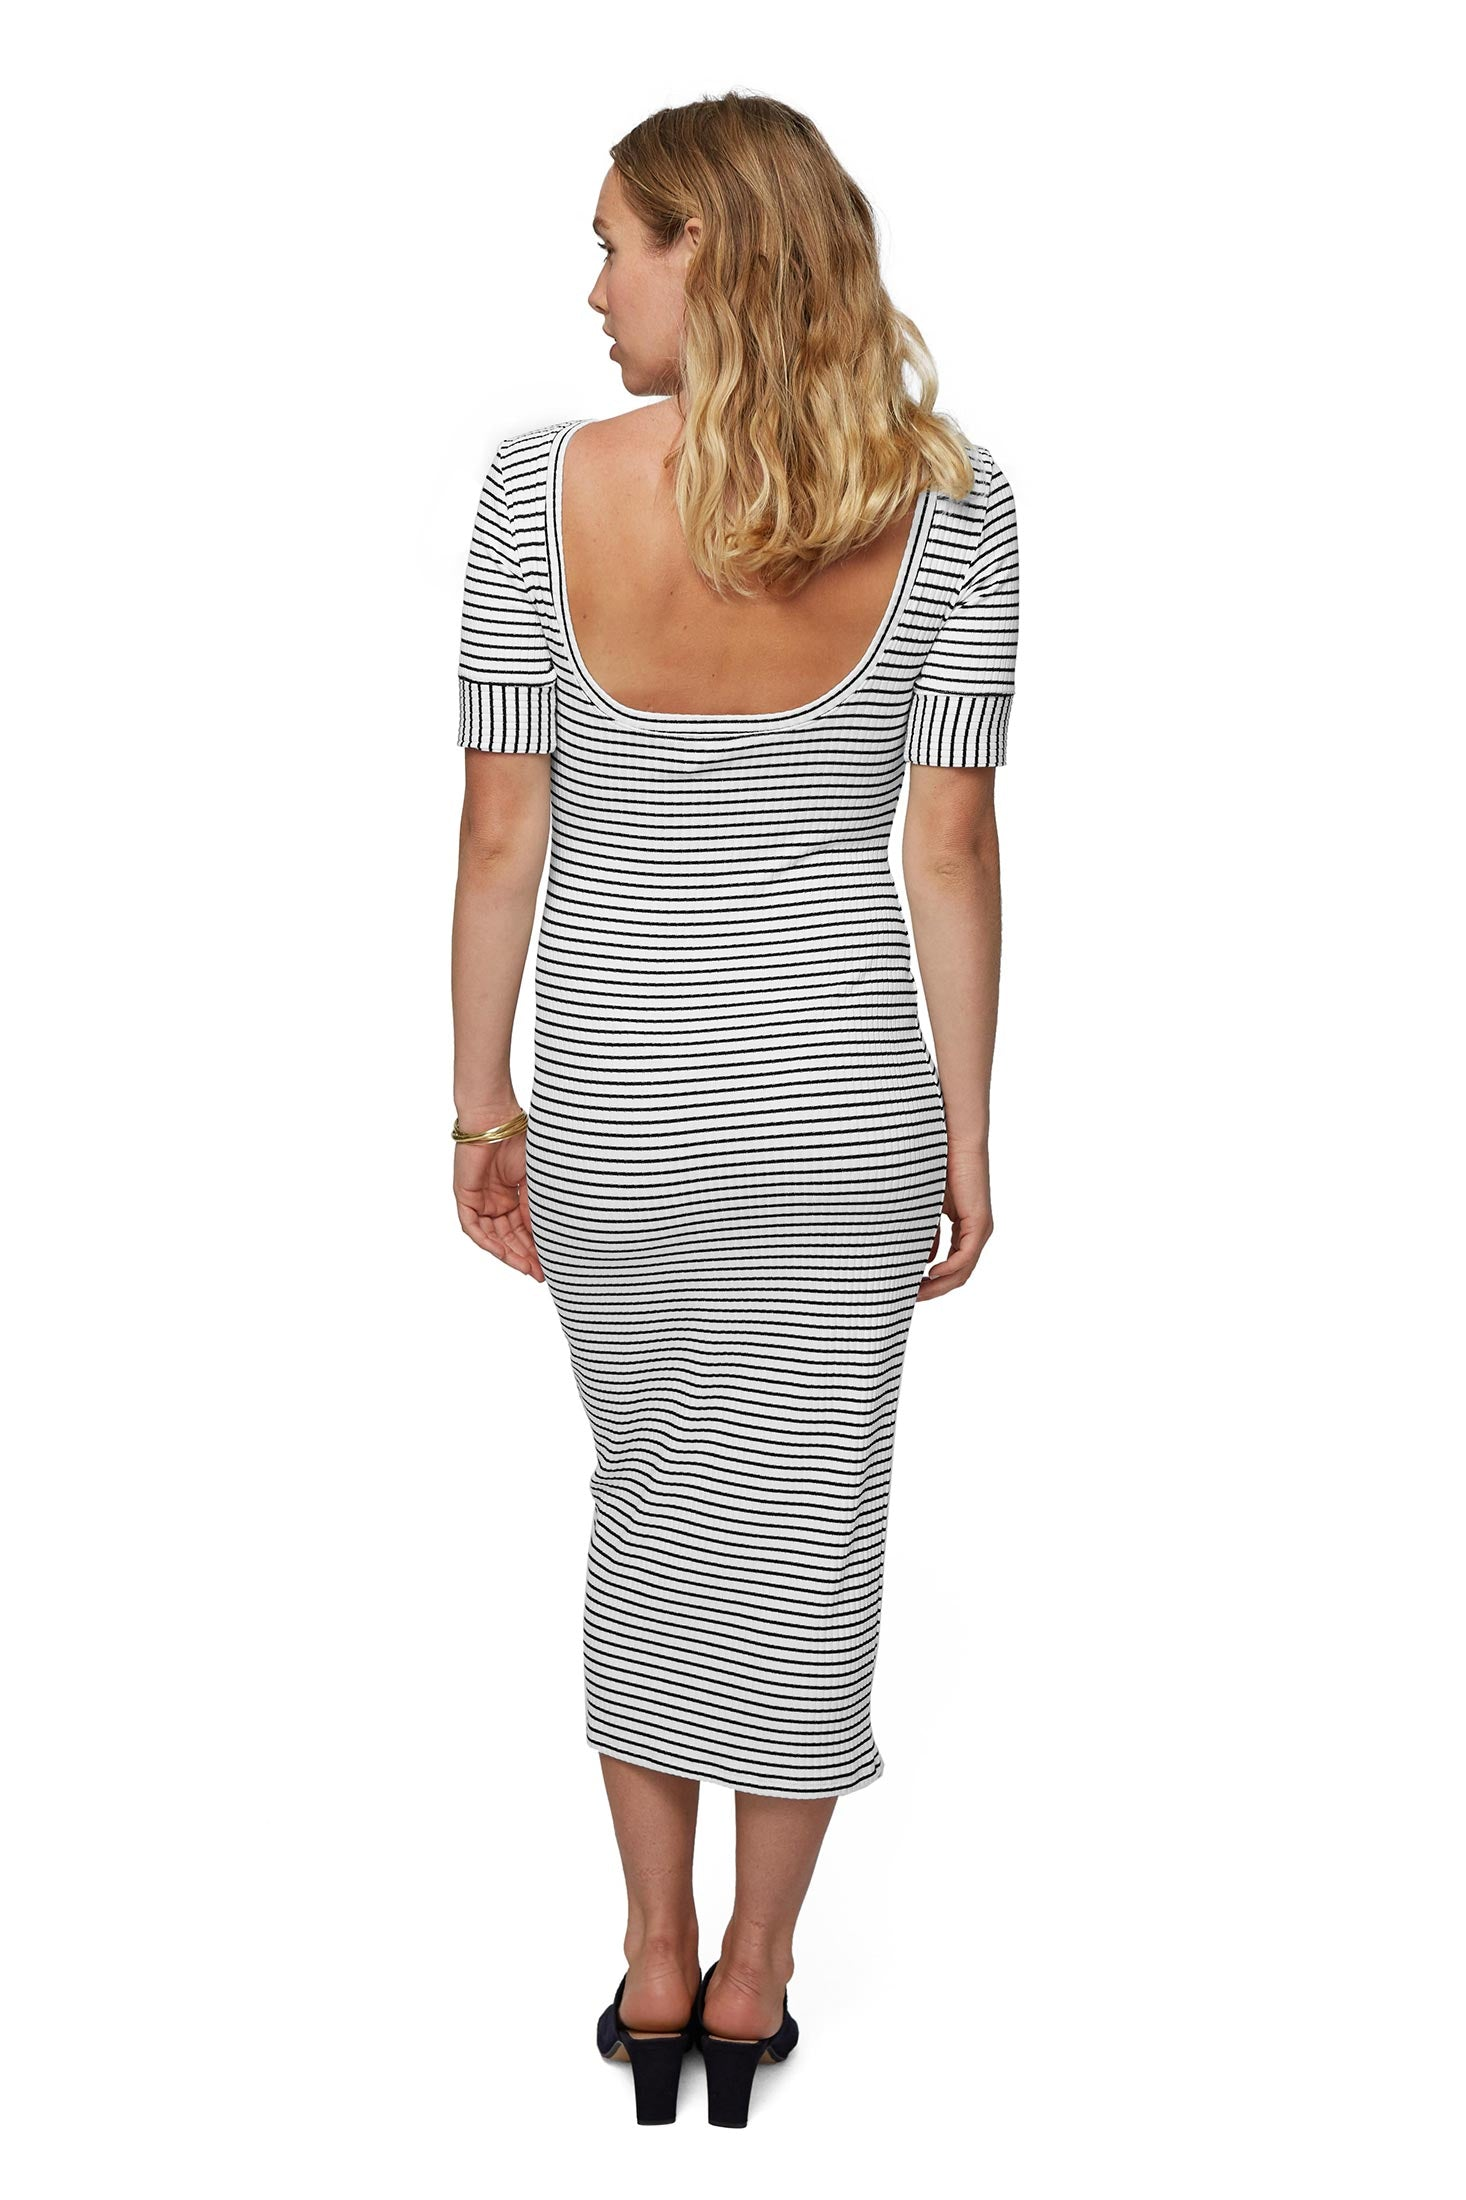 Rib Noelle Dress - Black / White Stripe, Maternity